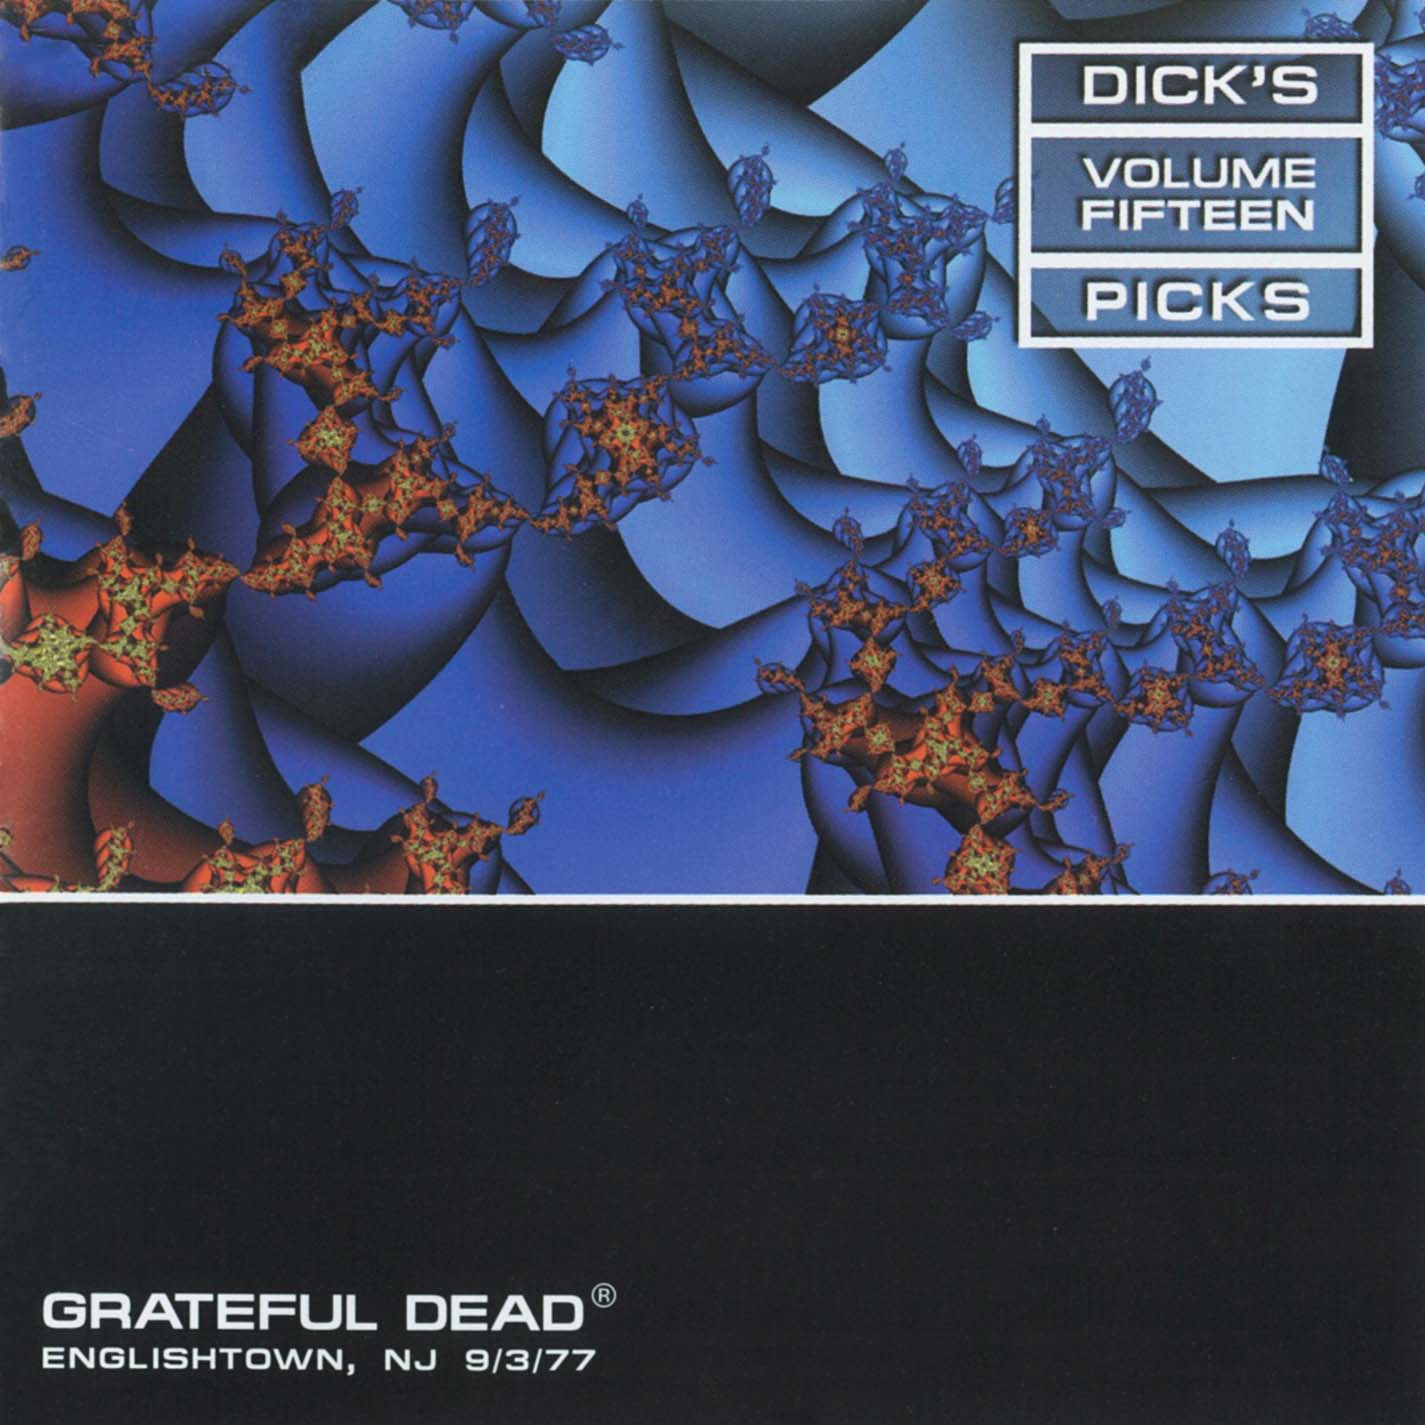 Grateful Dead Dick's Picks 15 album cover artwork